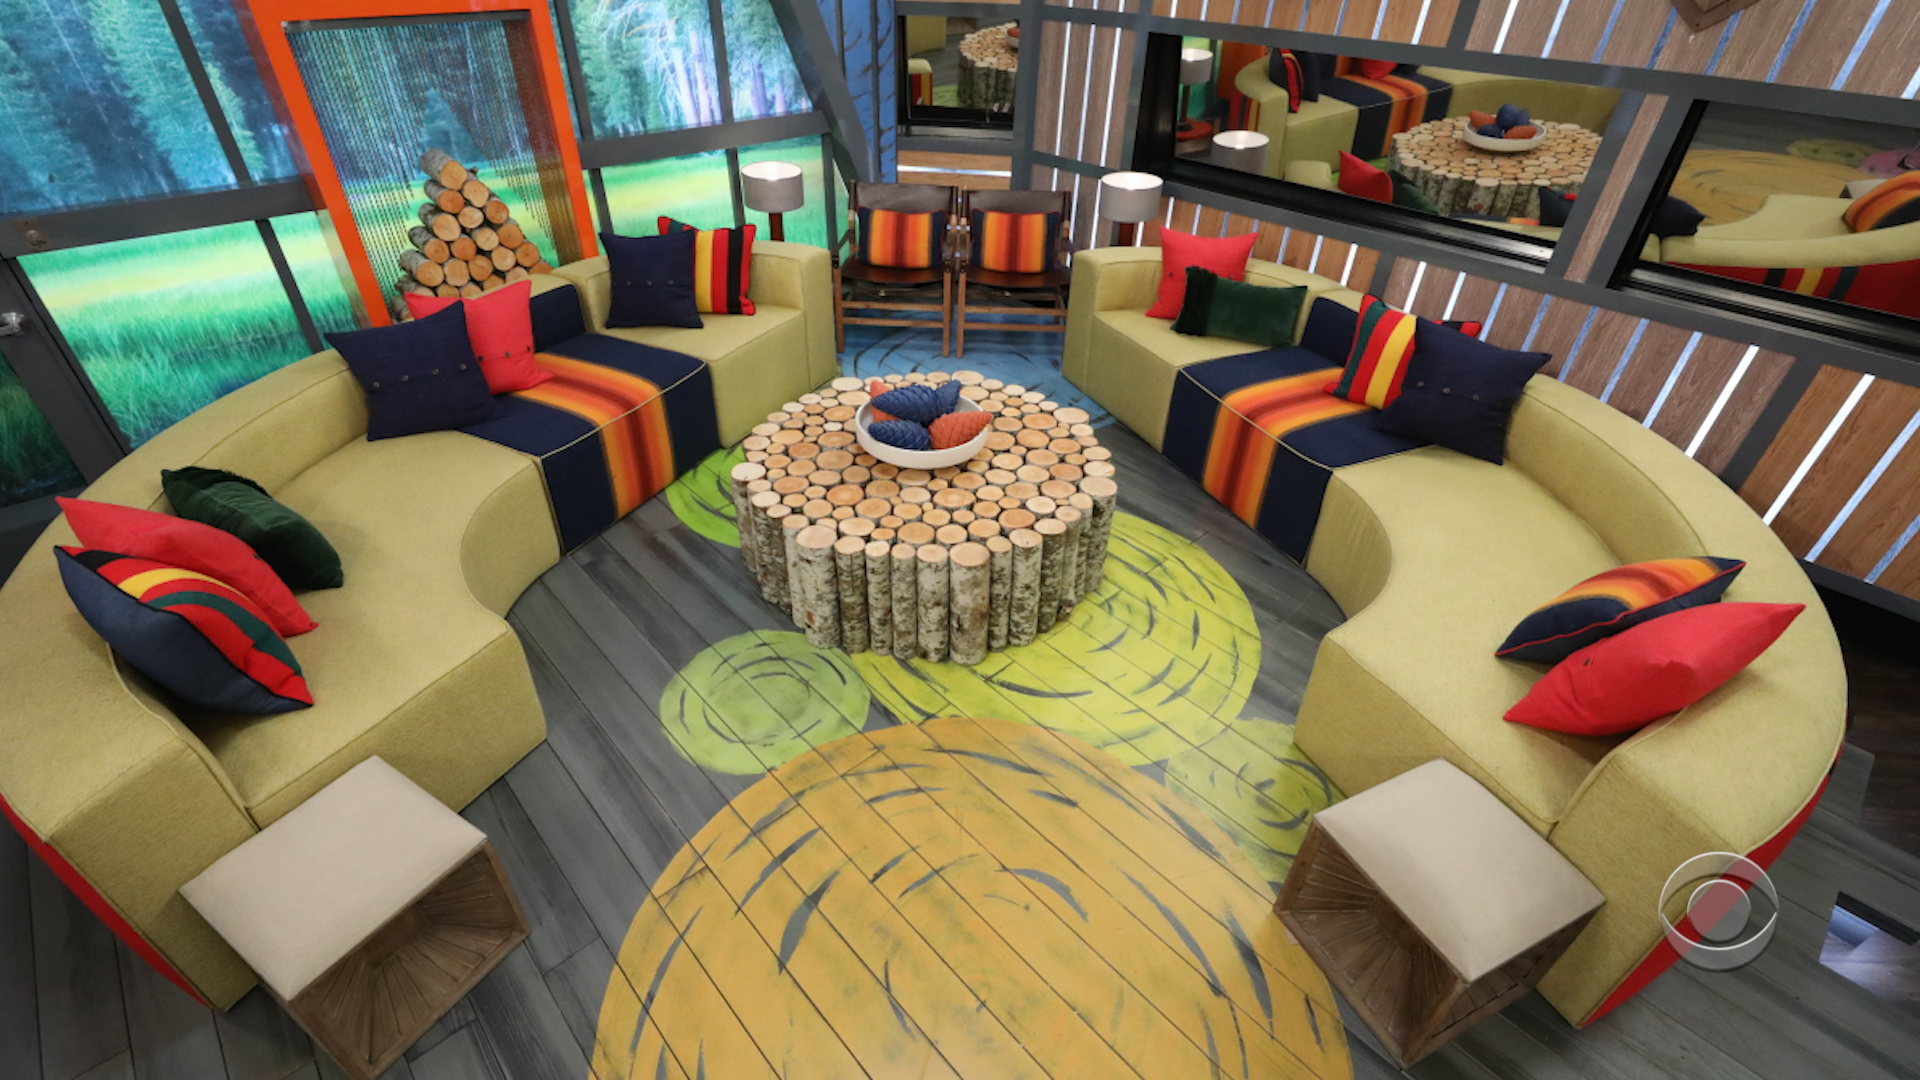 Big Brother - Main living area and couches